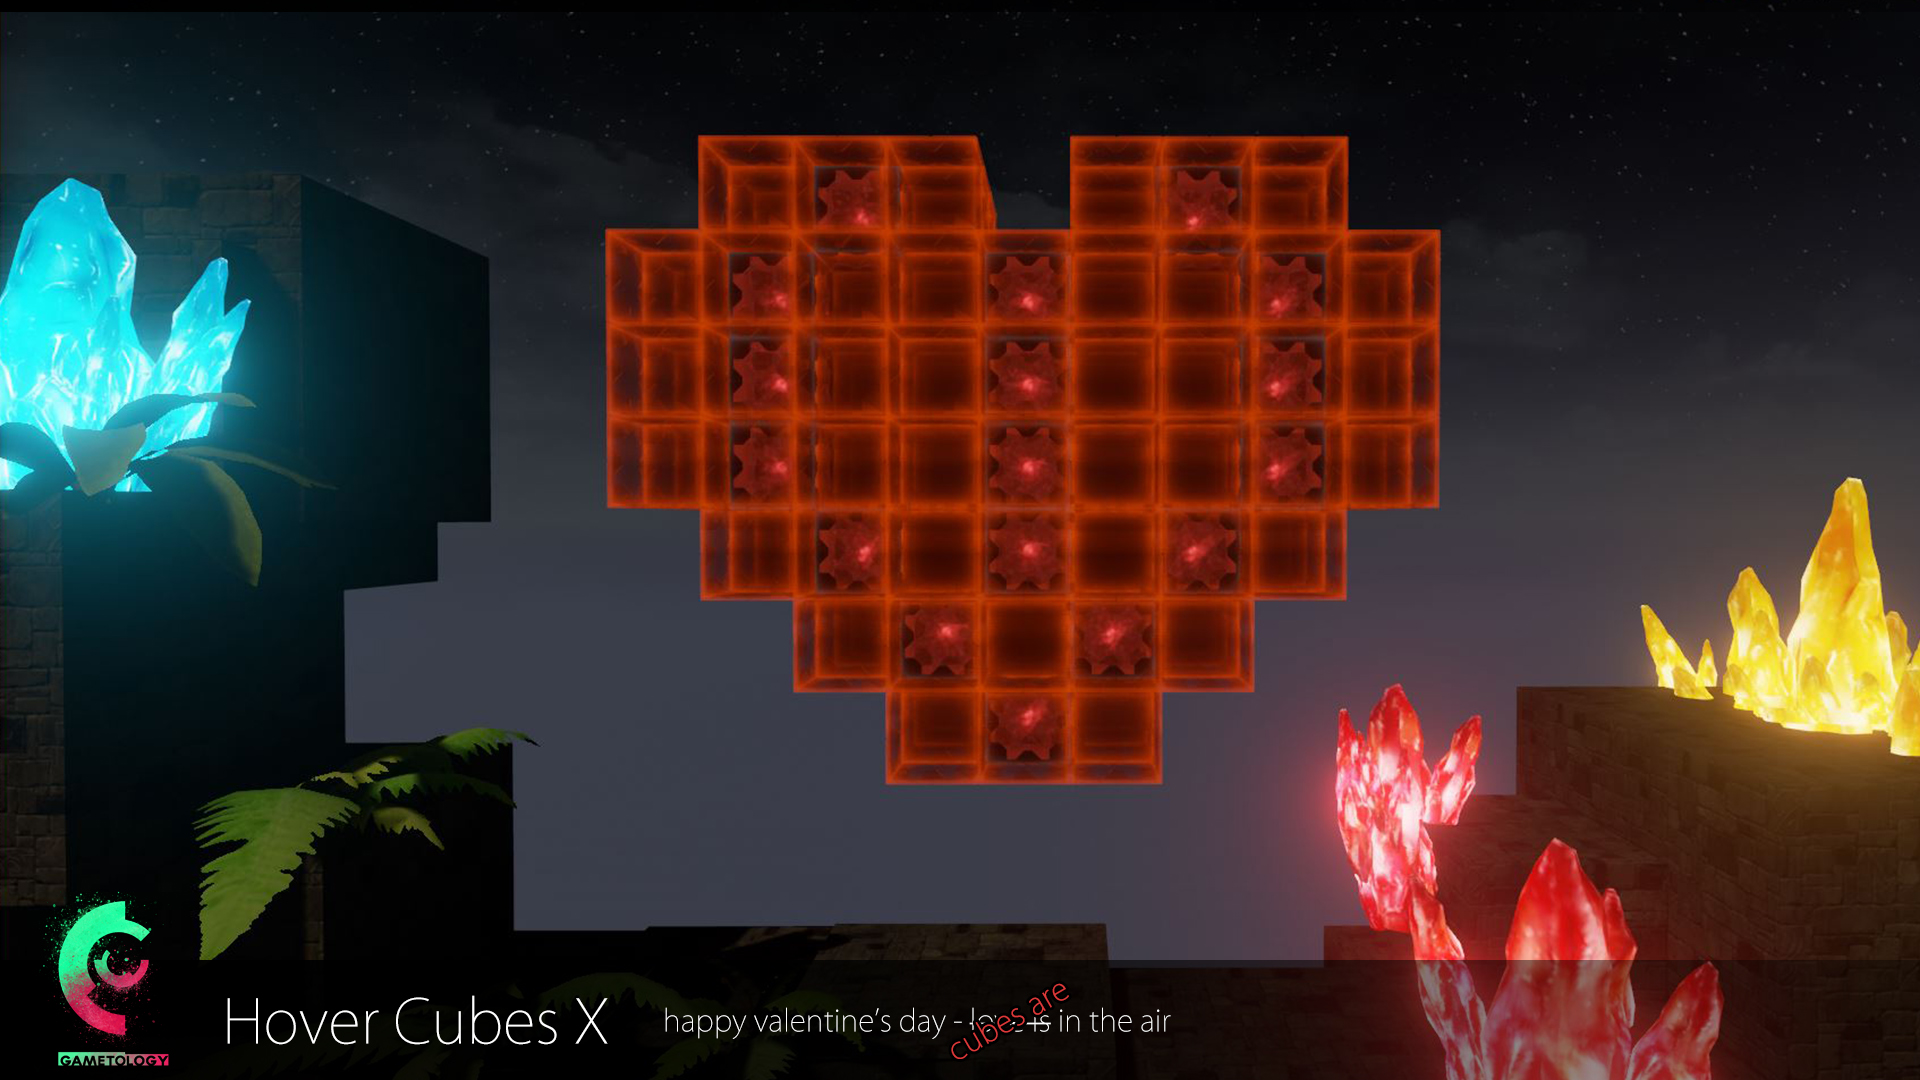 happy Valentine's Day – cubes are in the air